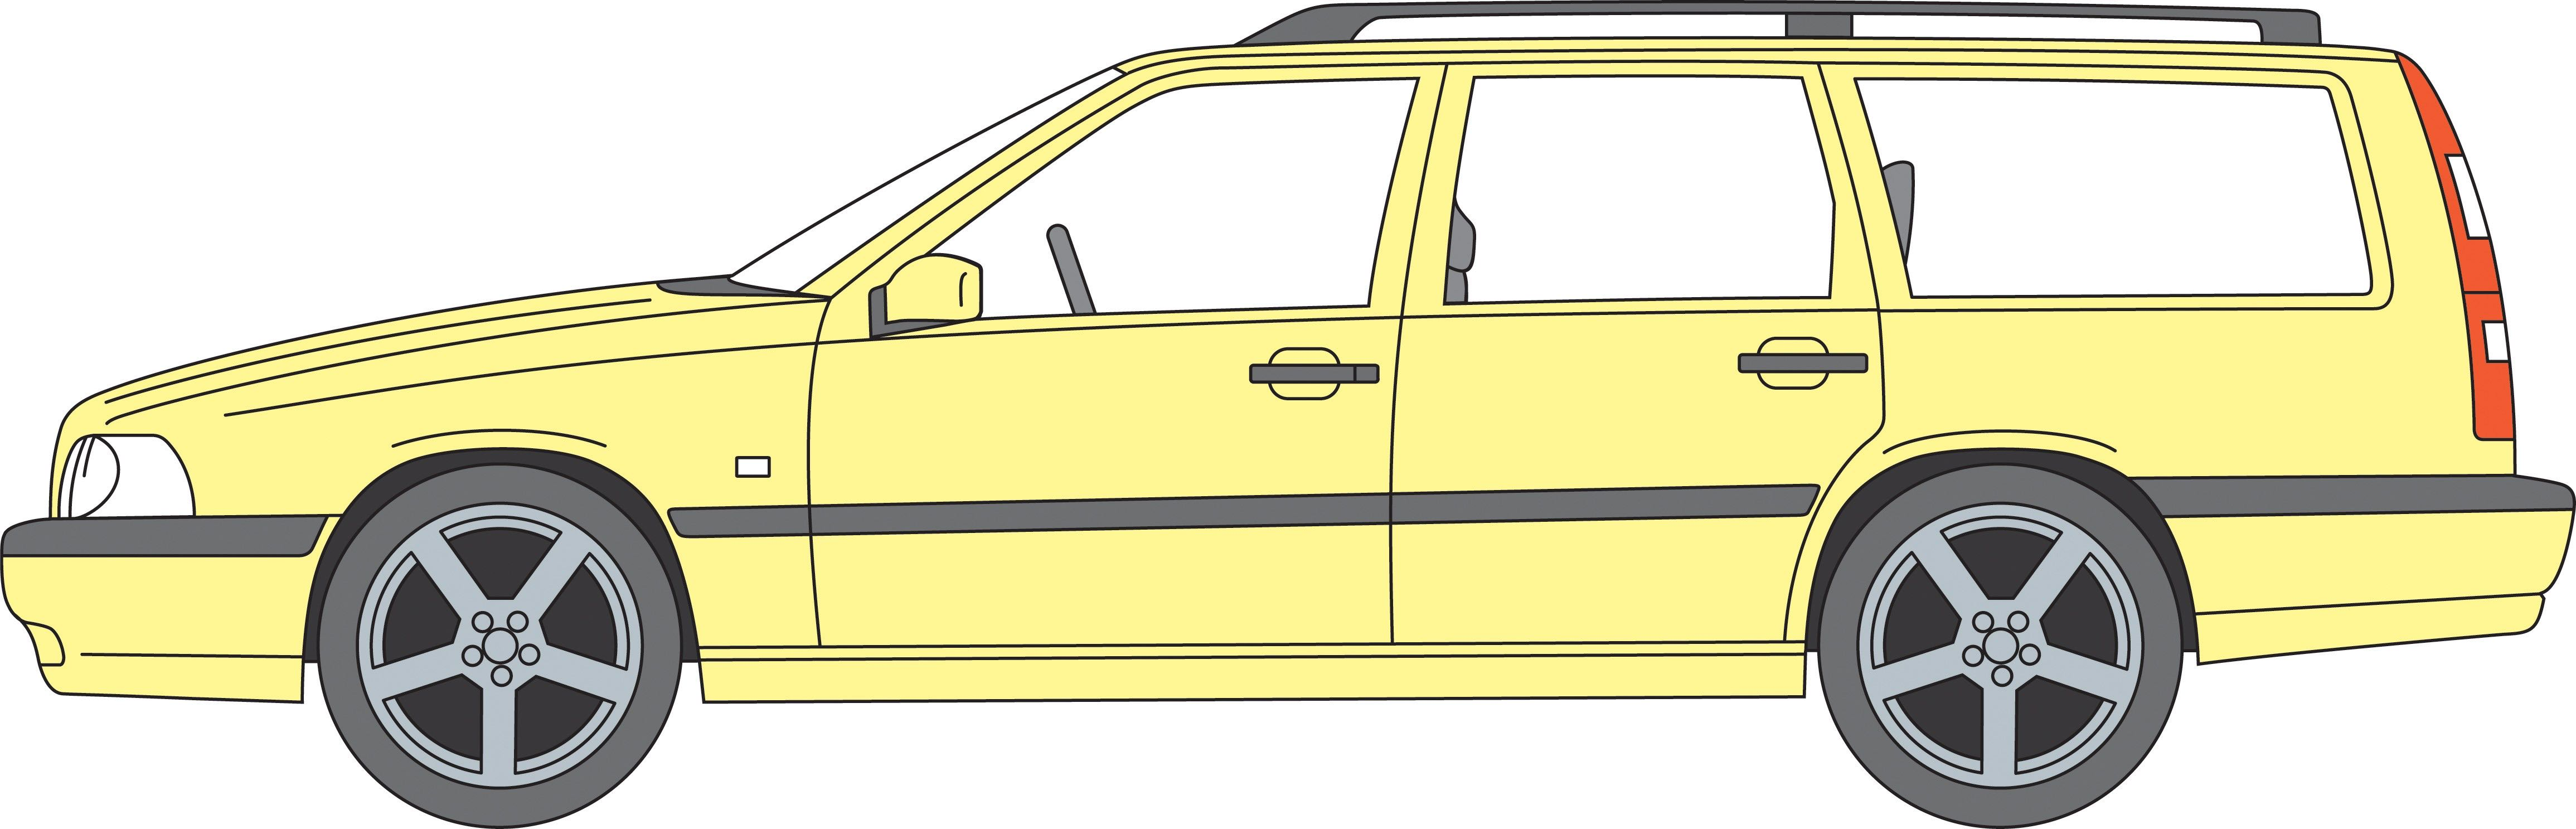 1995 Volvo 850 T 5r, Yellow -  850 wagon, 1995, Exterior, T-5R, Yellow, Yellow T-5R